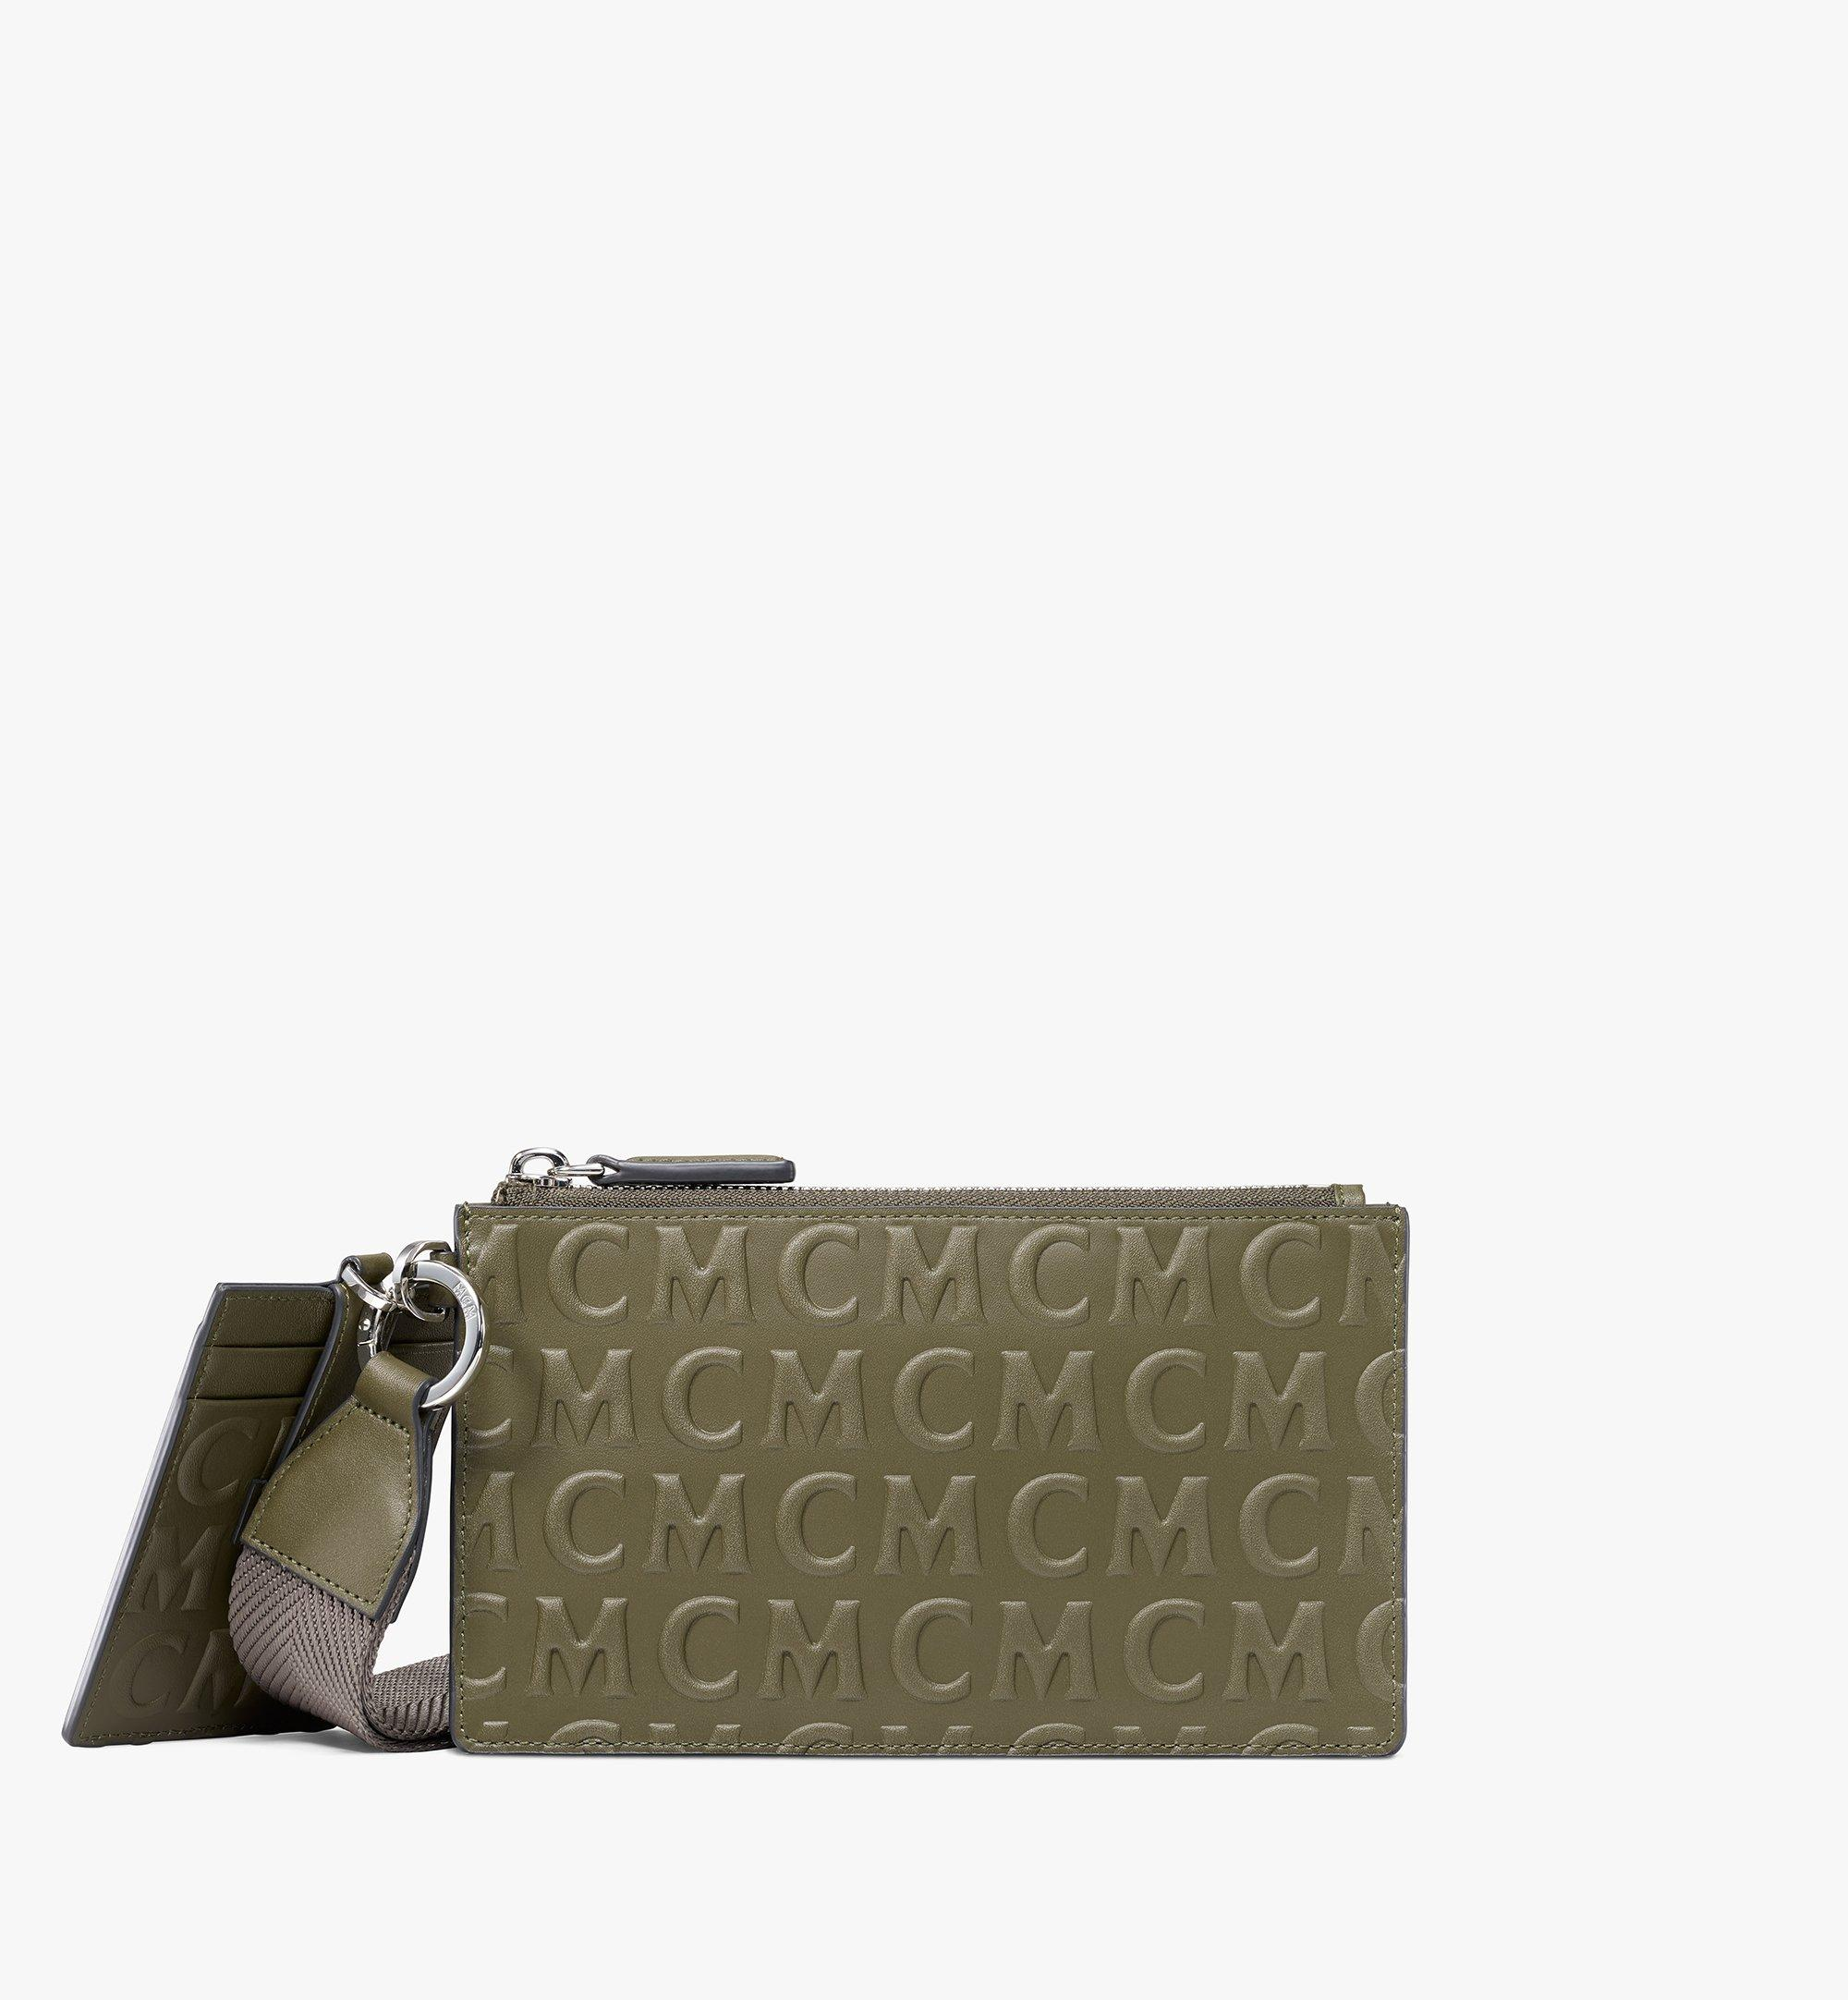 MCM Multifunction Pouch in MCM Monogram Leather Green MXZAAMD01JH001 Alternate View 1